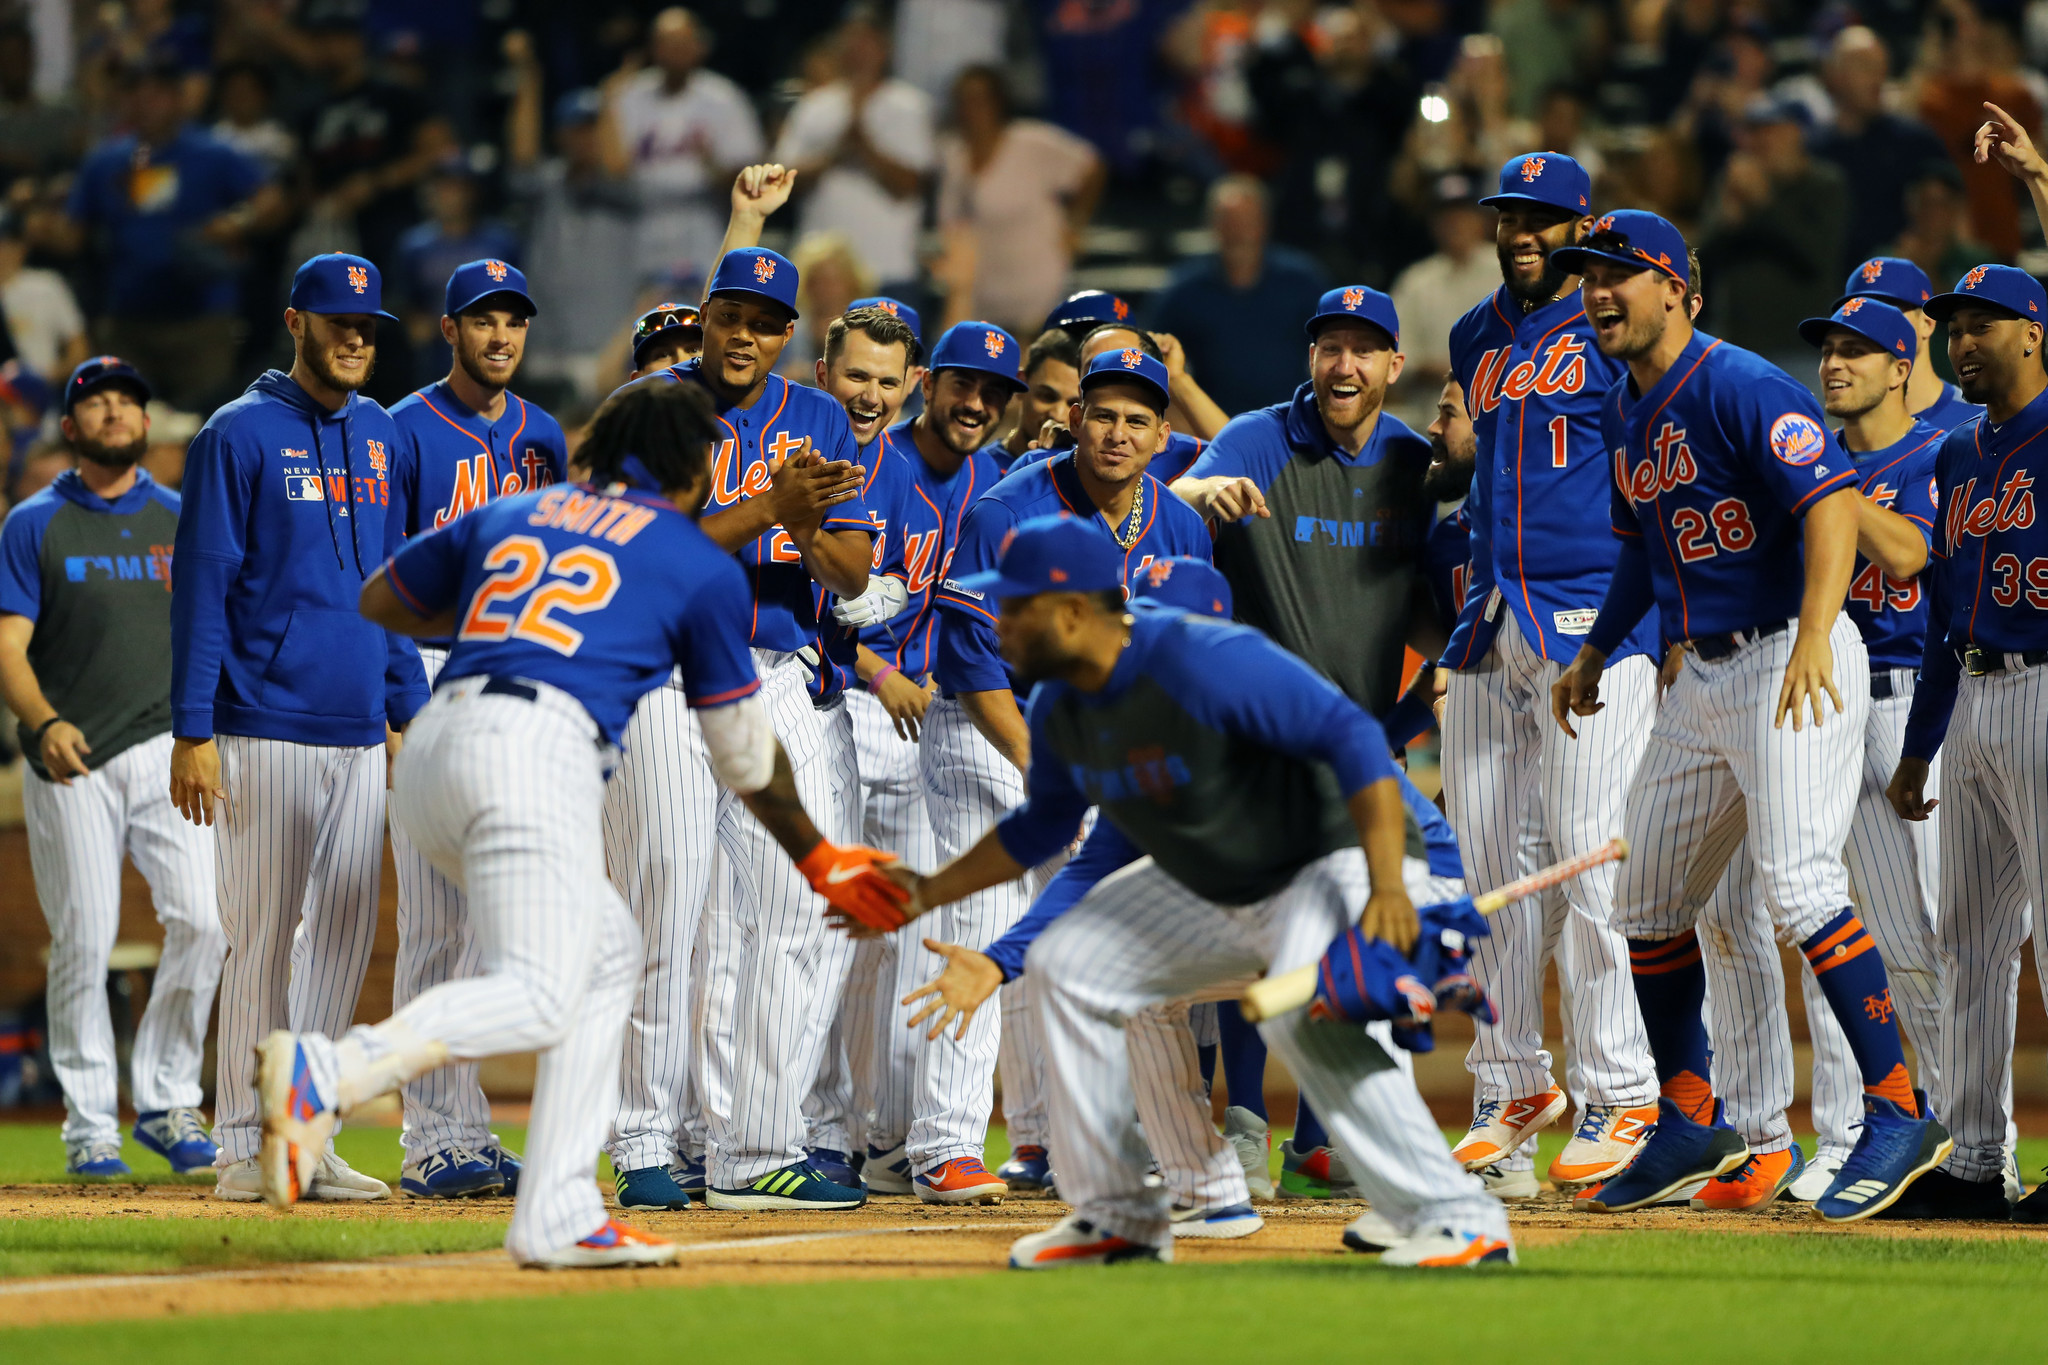 The 2019 Mets fell short of the playoffs, but still proved the critics wrong